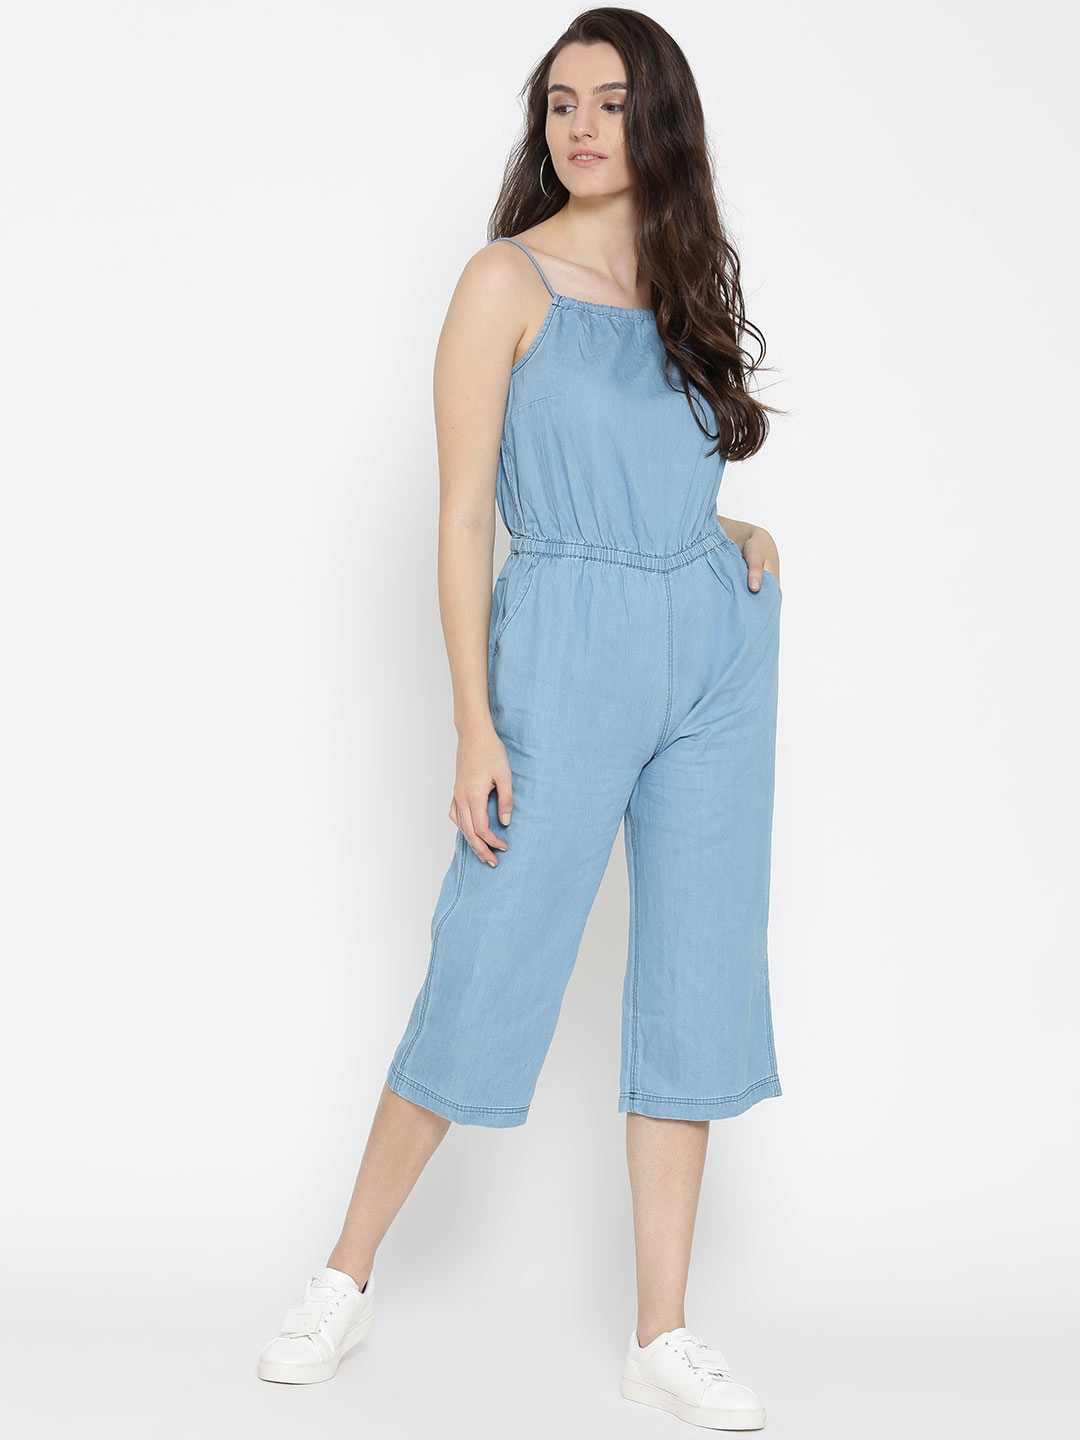 abe1469a4324 Buy DressBerry Blue Denim Capri Jumpsuit - Jumpsuit for Women ...